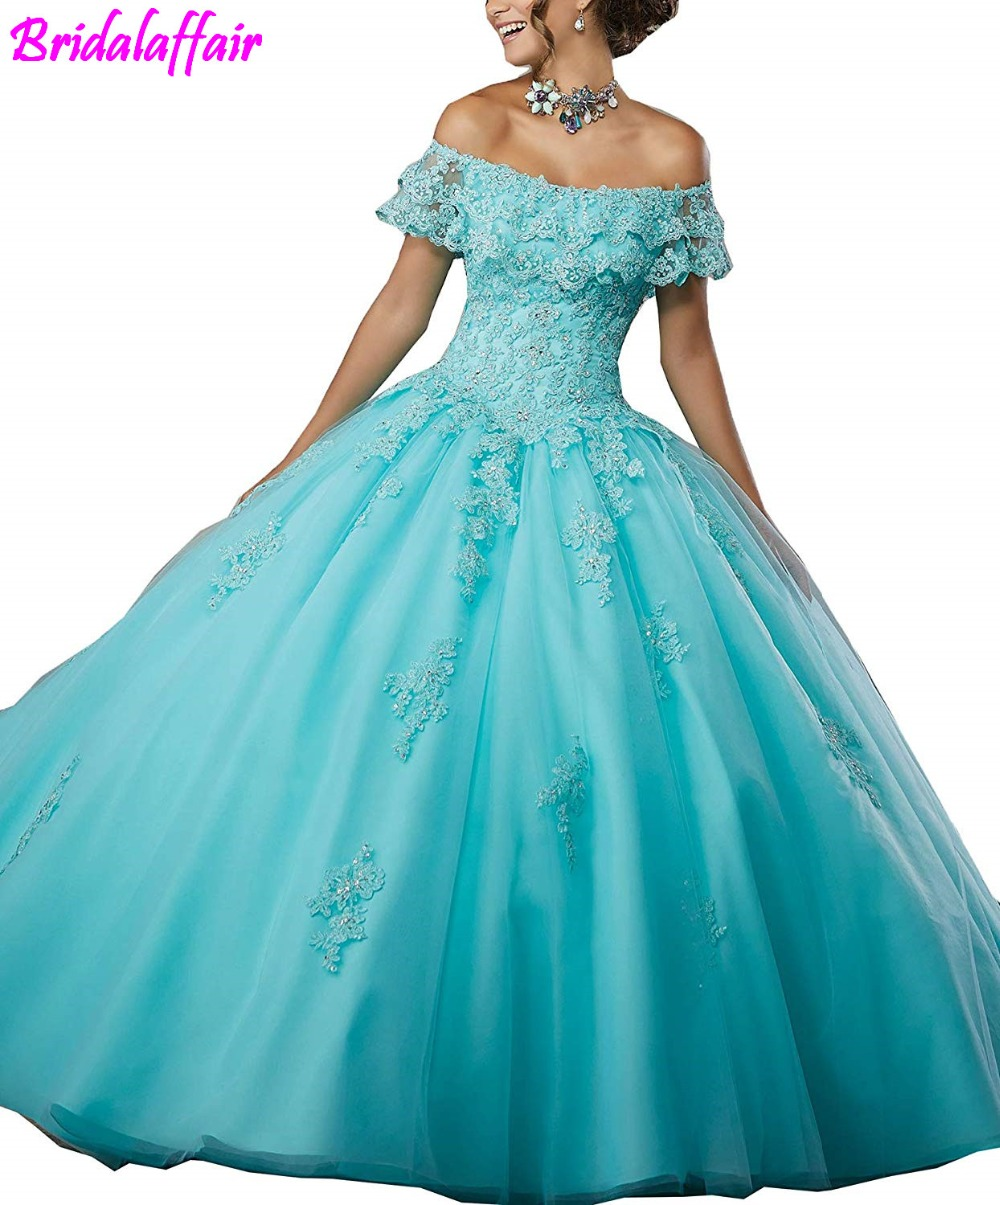 Women s Girls Ball Gown Beads Prom Dress Lace Prom Gowns Sweet Elegant Evening Dresses vestidos